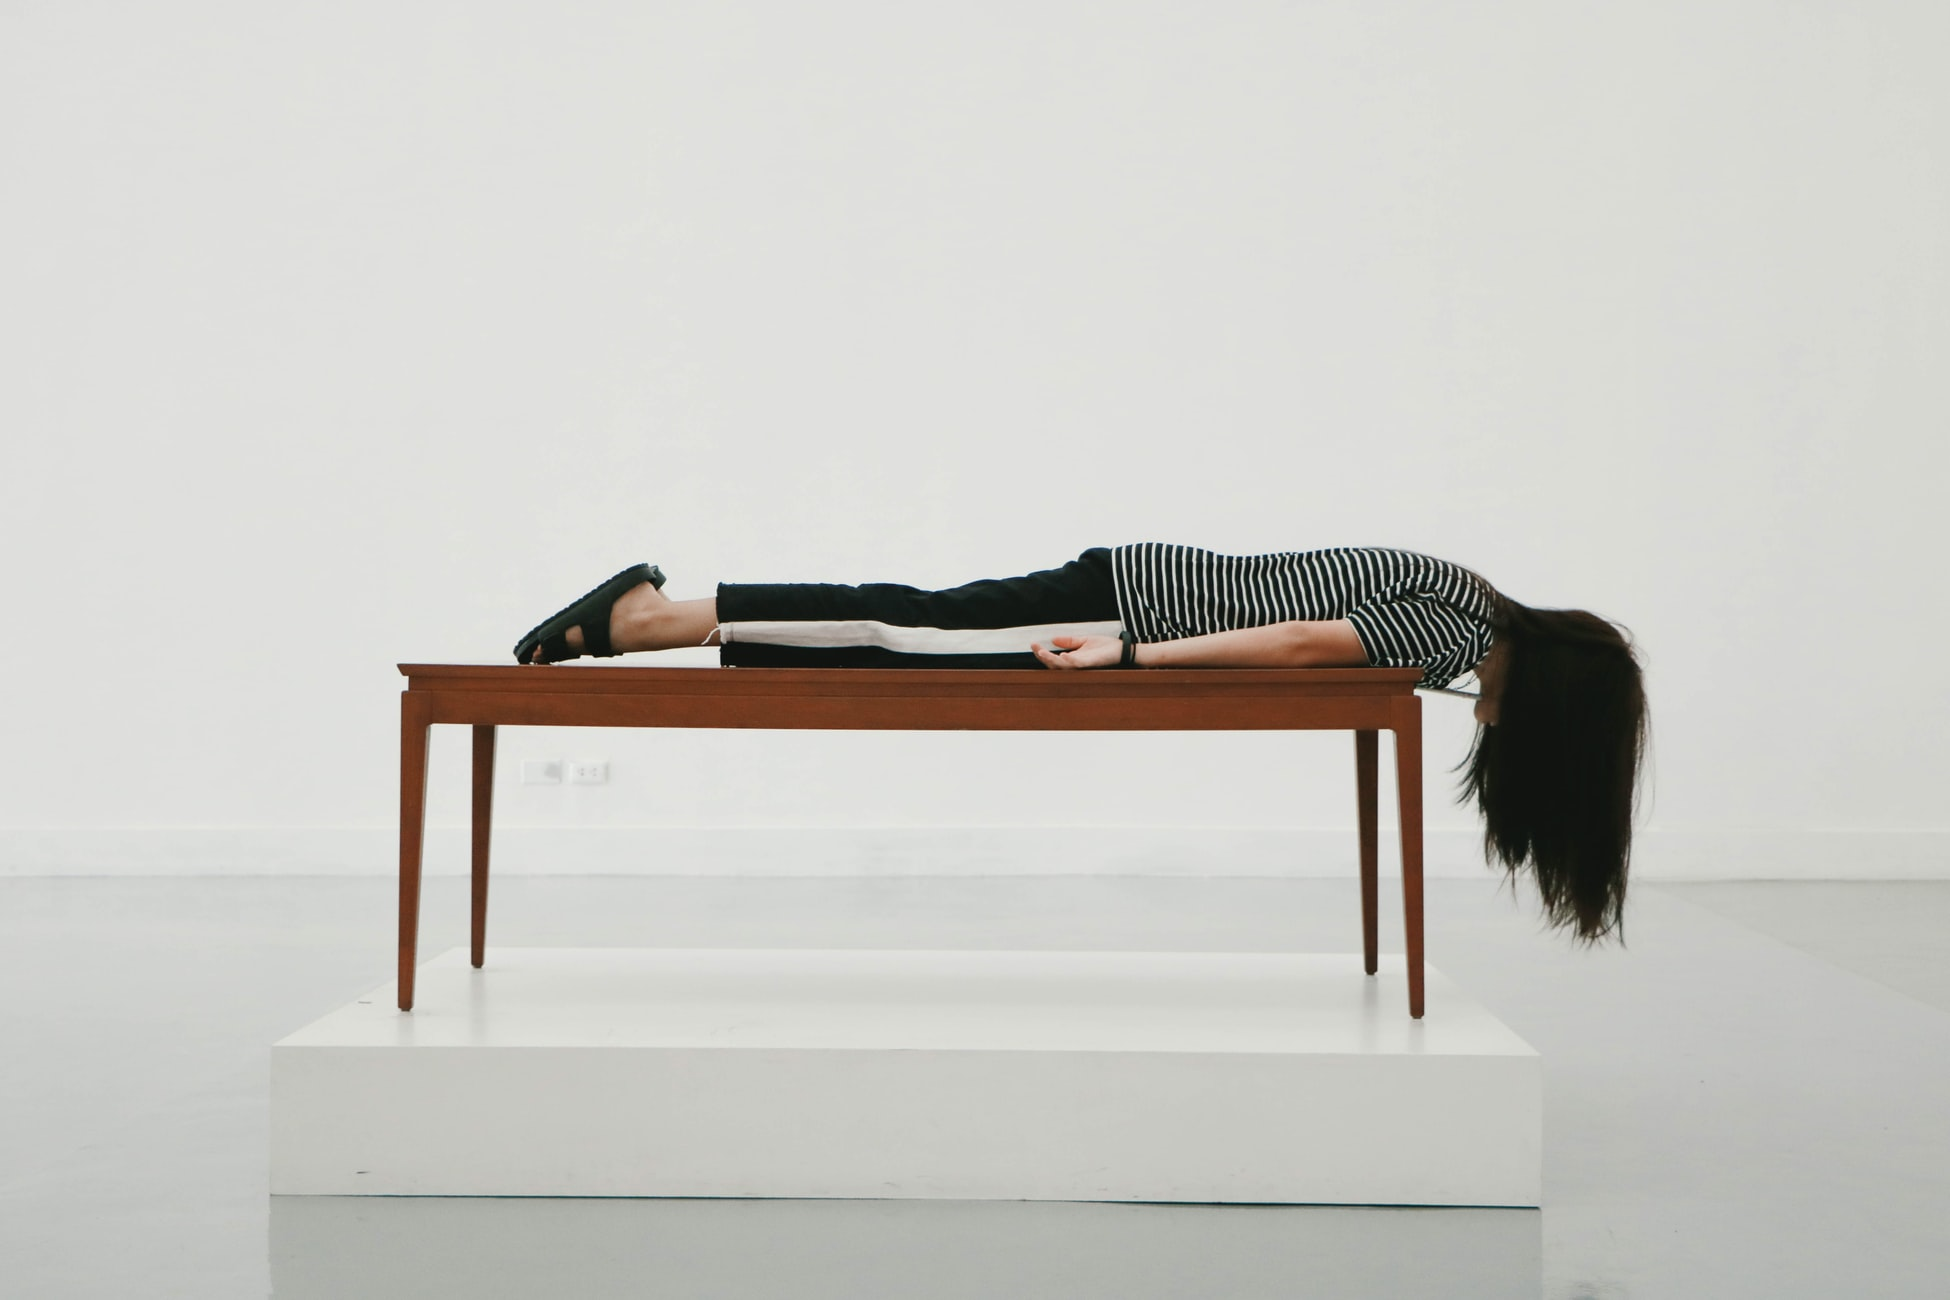 a women lying face down on a table